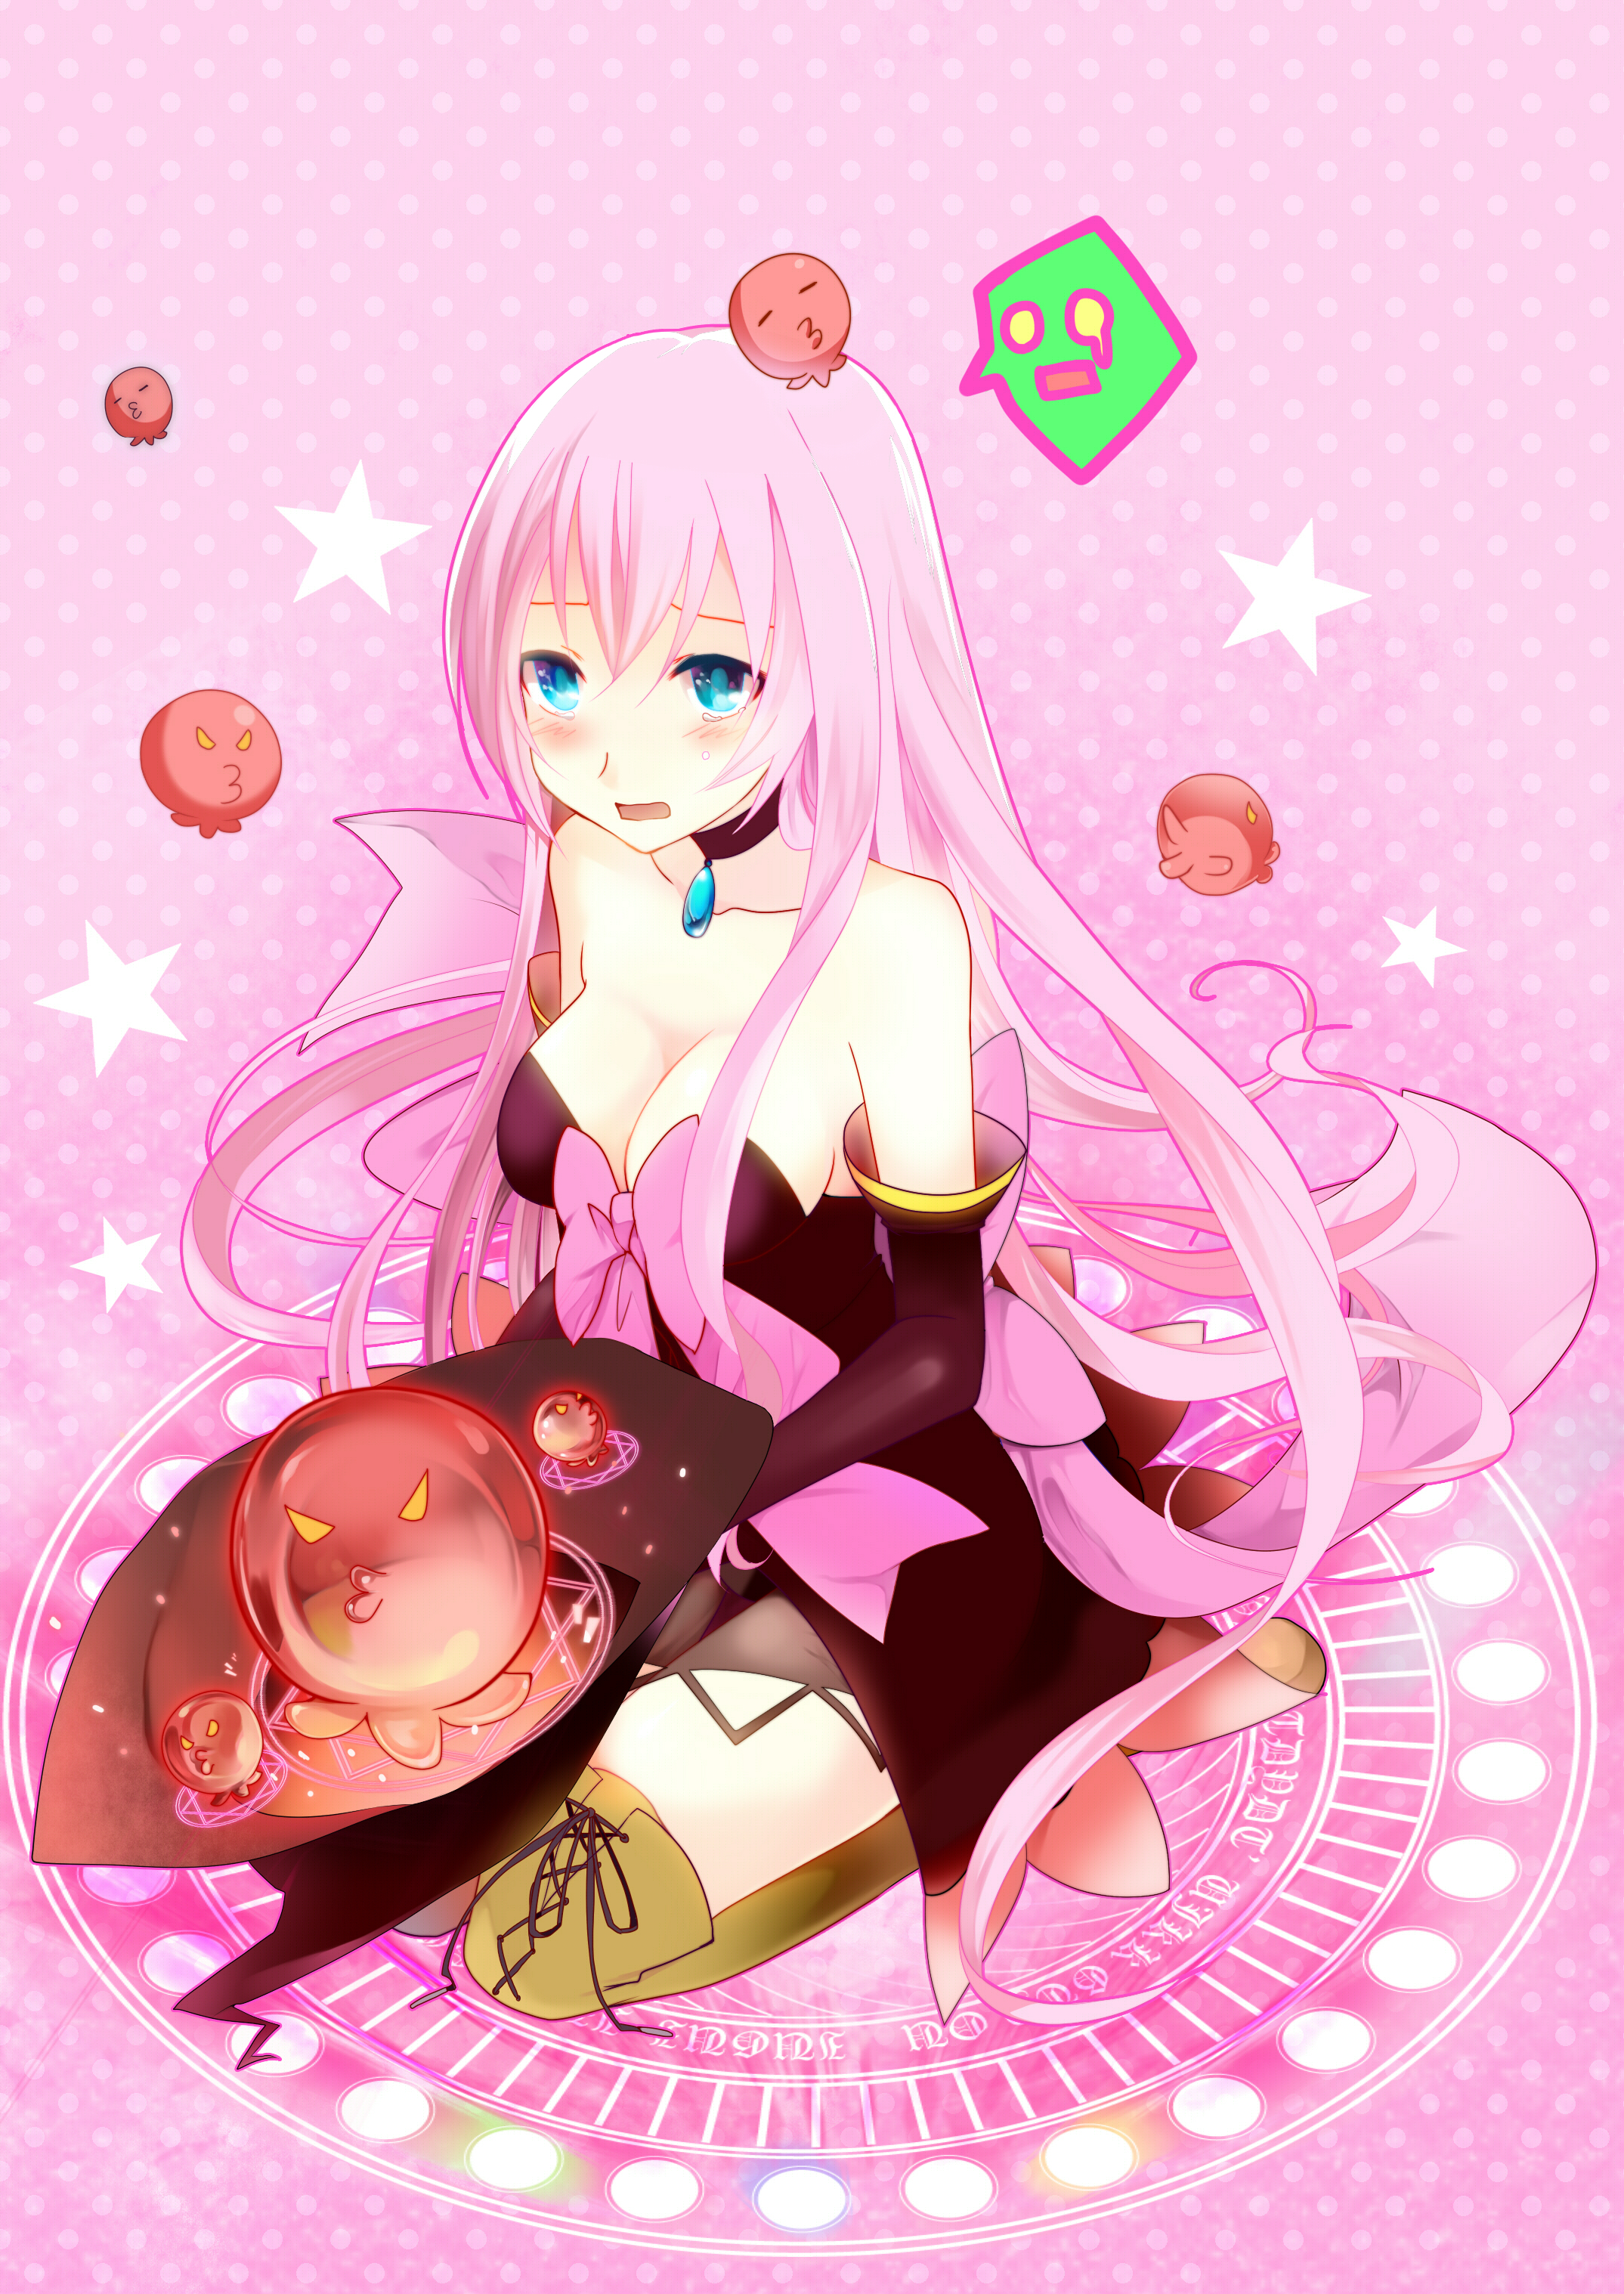 Beautiful Anime Girl Wallpaper Project Diva Witch Style Project Diva 2nd Zerochan